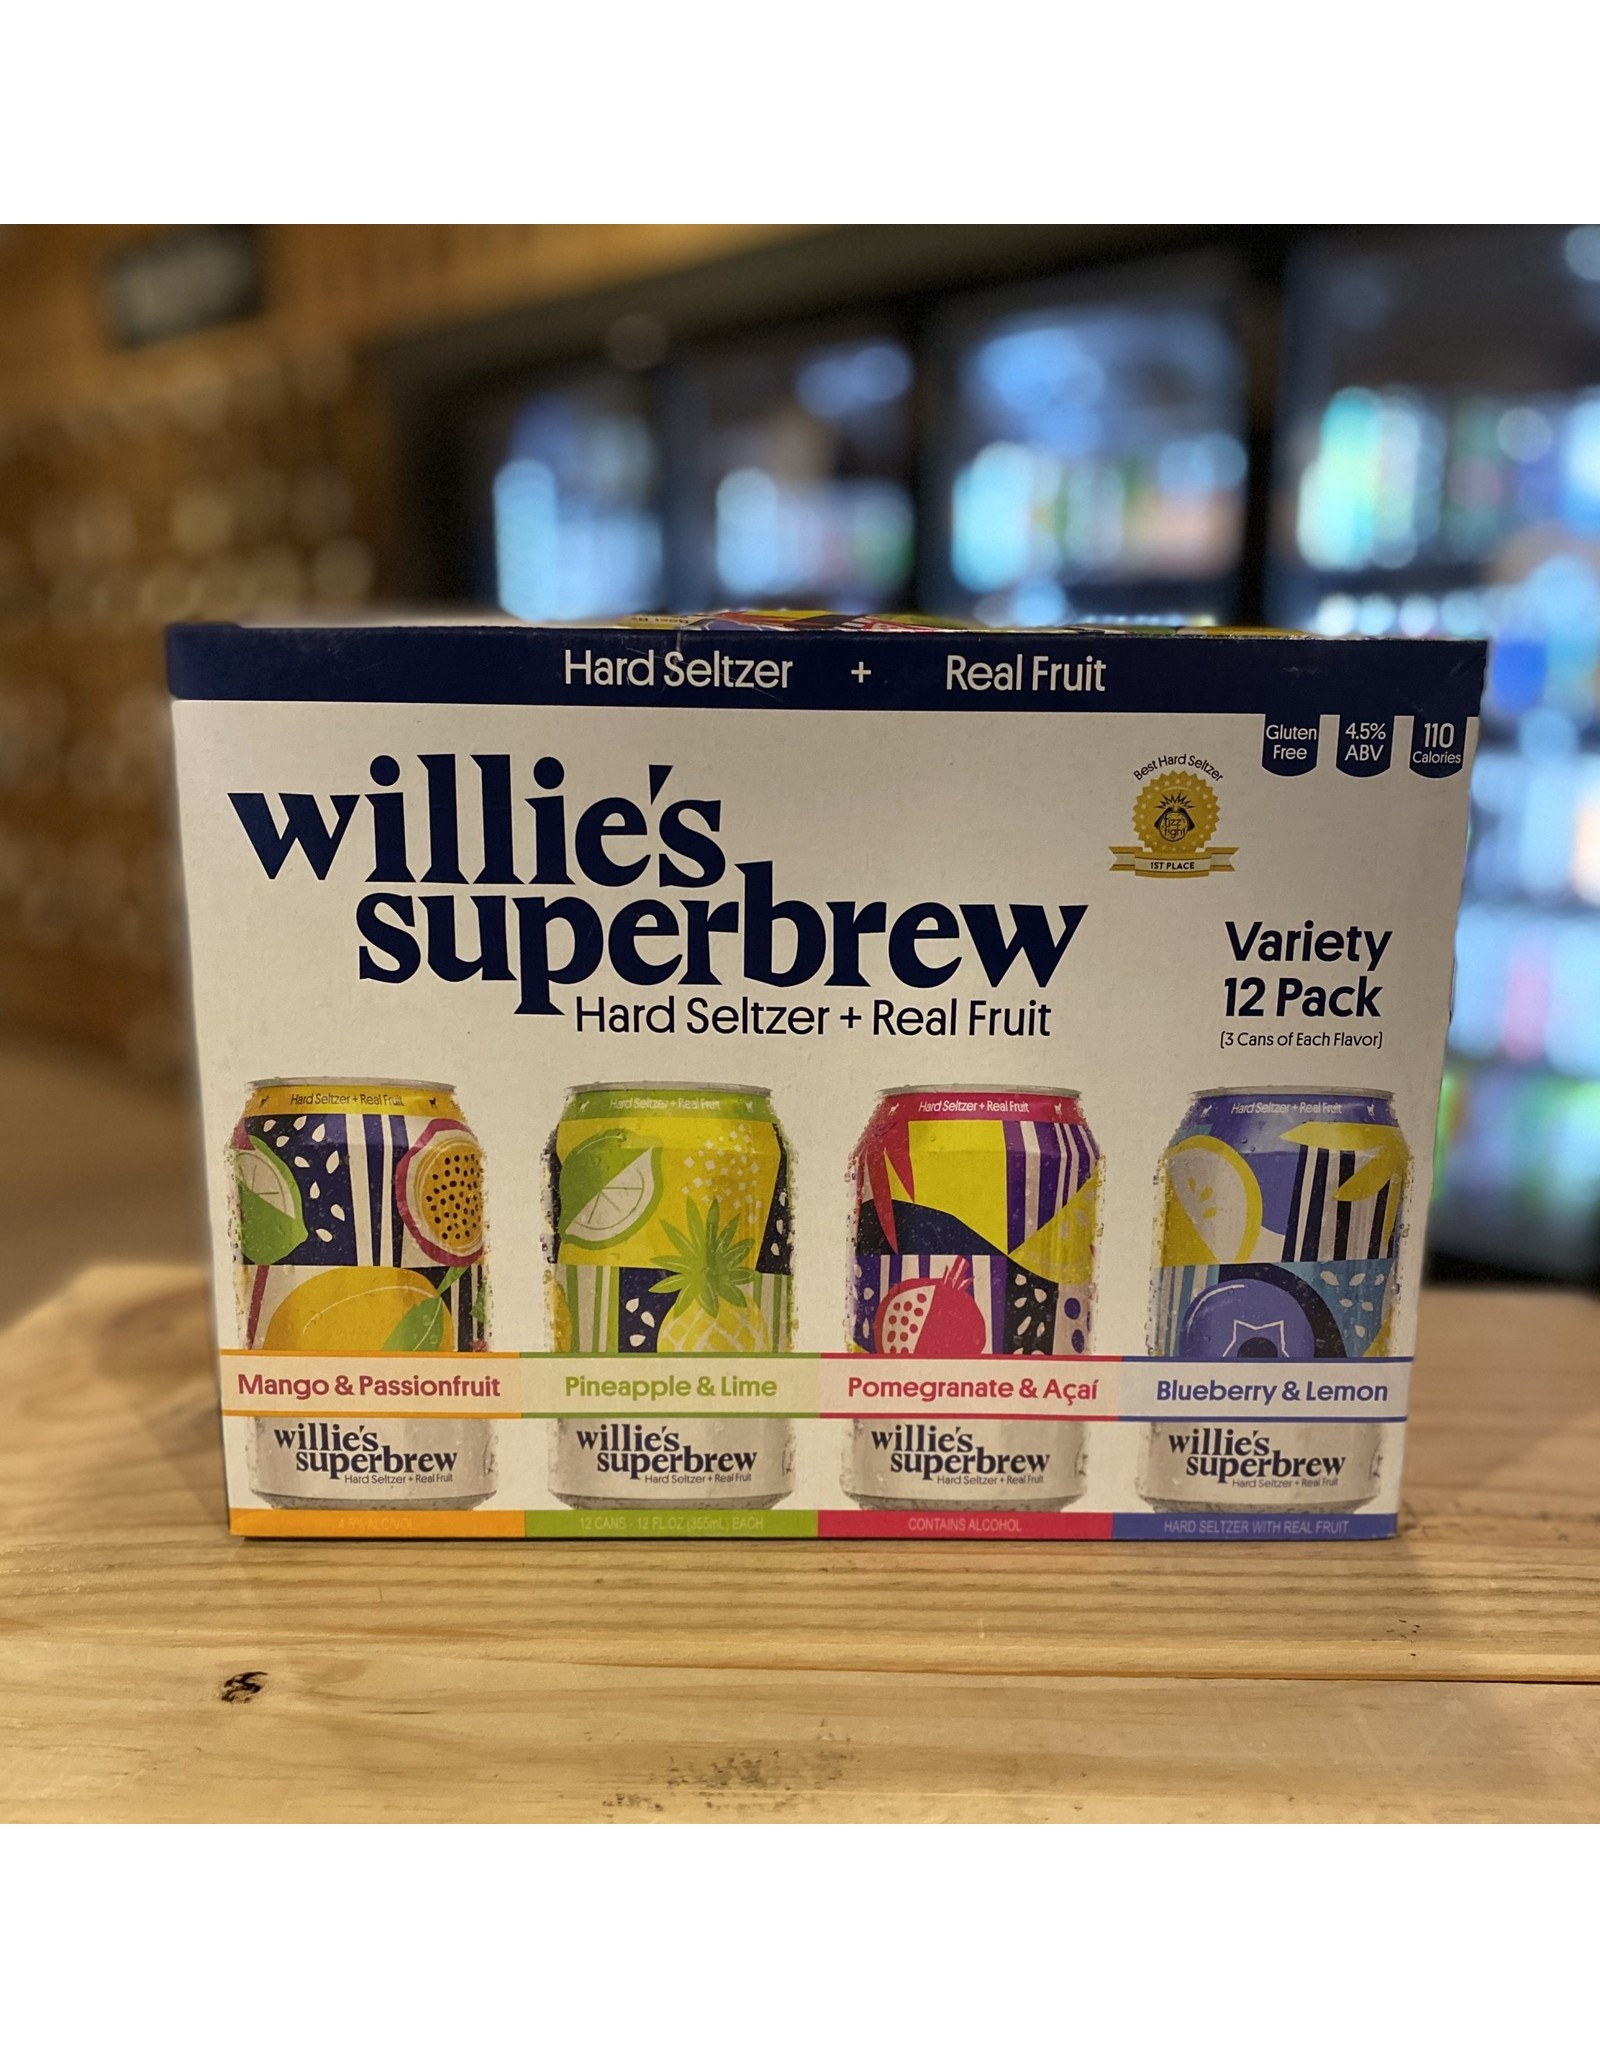 Hard Seltzer Willies Superbrew Hard Seltzer Variety 12-Pack - Pawtucket, RI